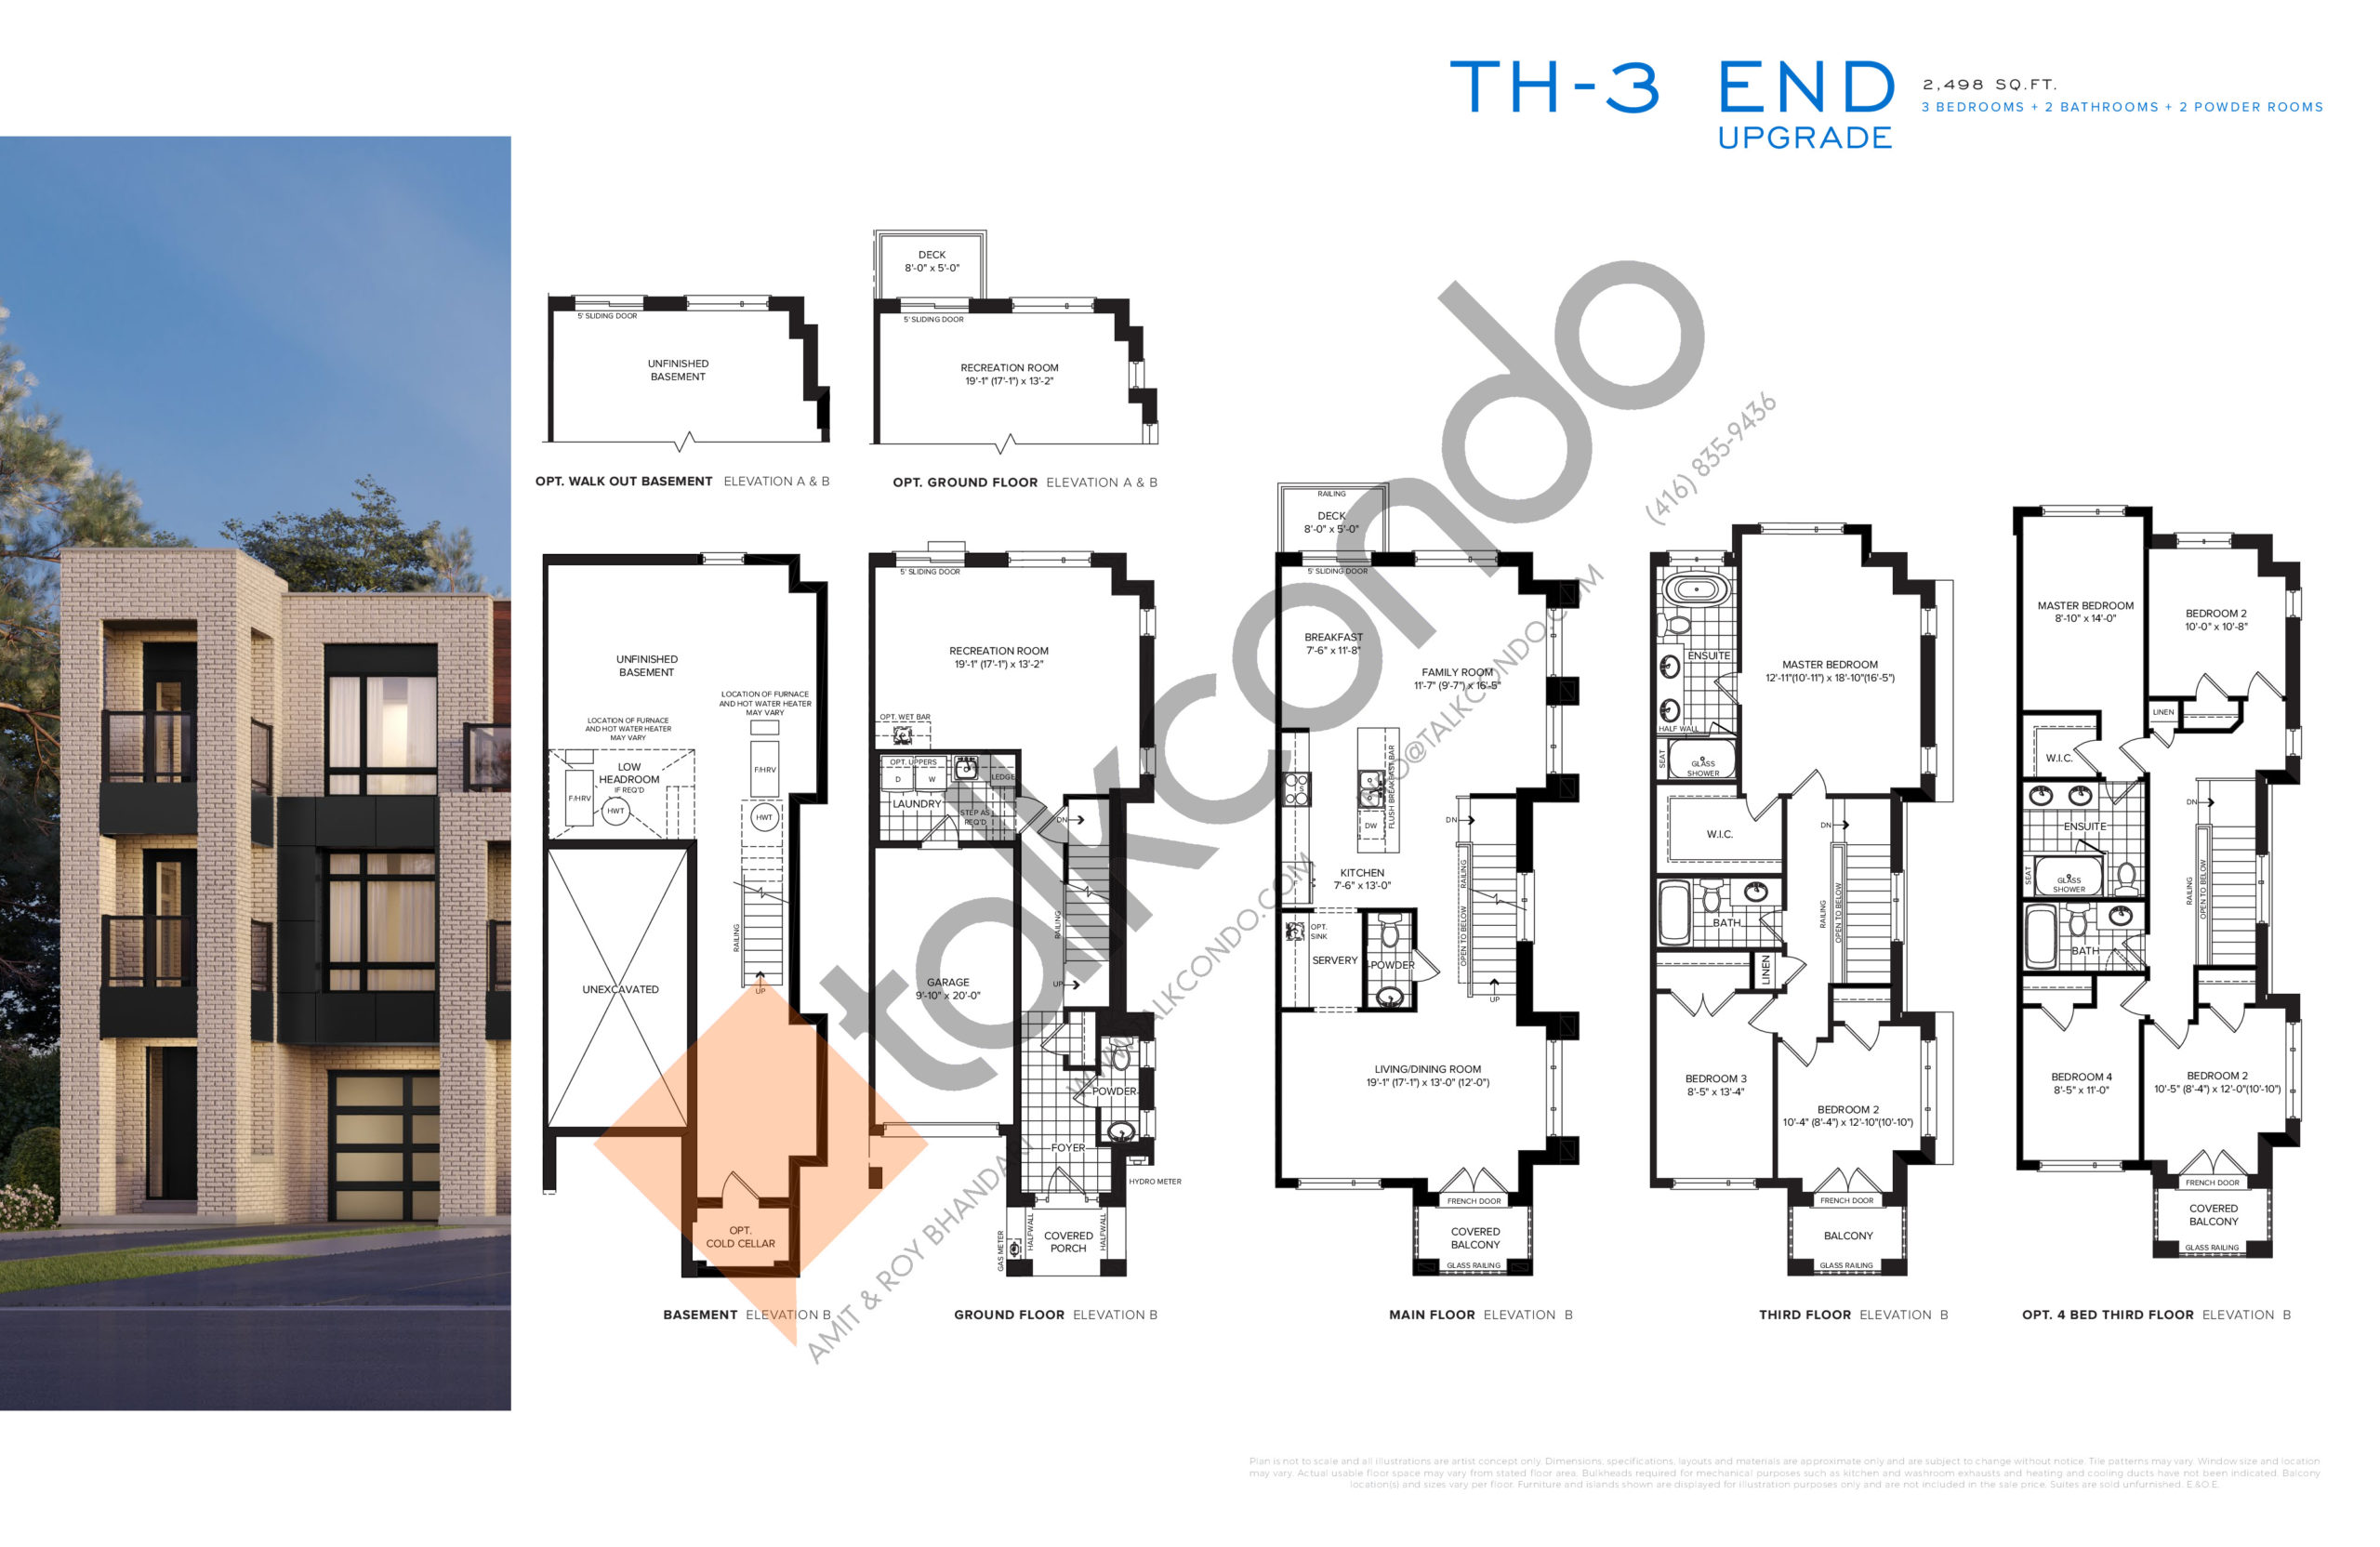 TH-3 End Upgrade Floor Plan at SXSW Ravine Towns - 2498 sq.ft